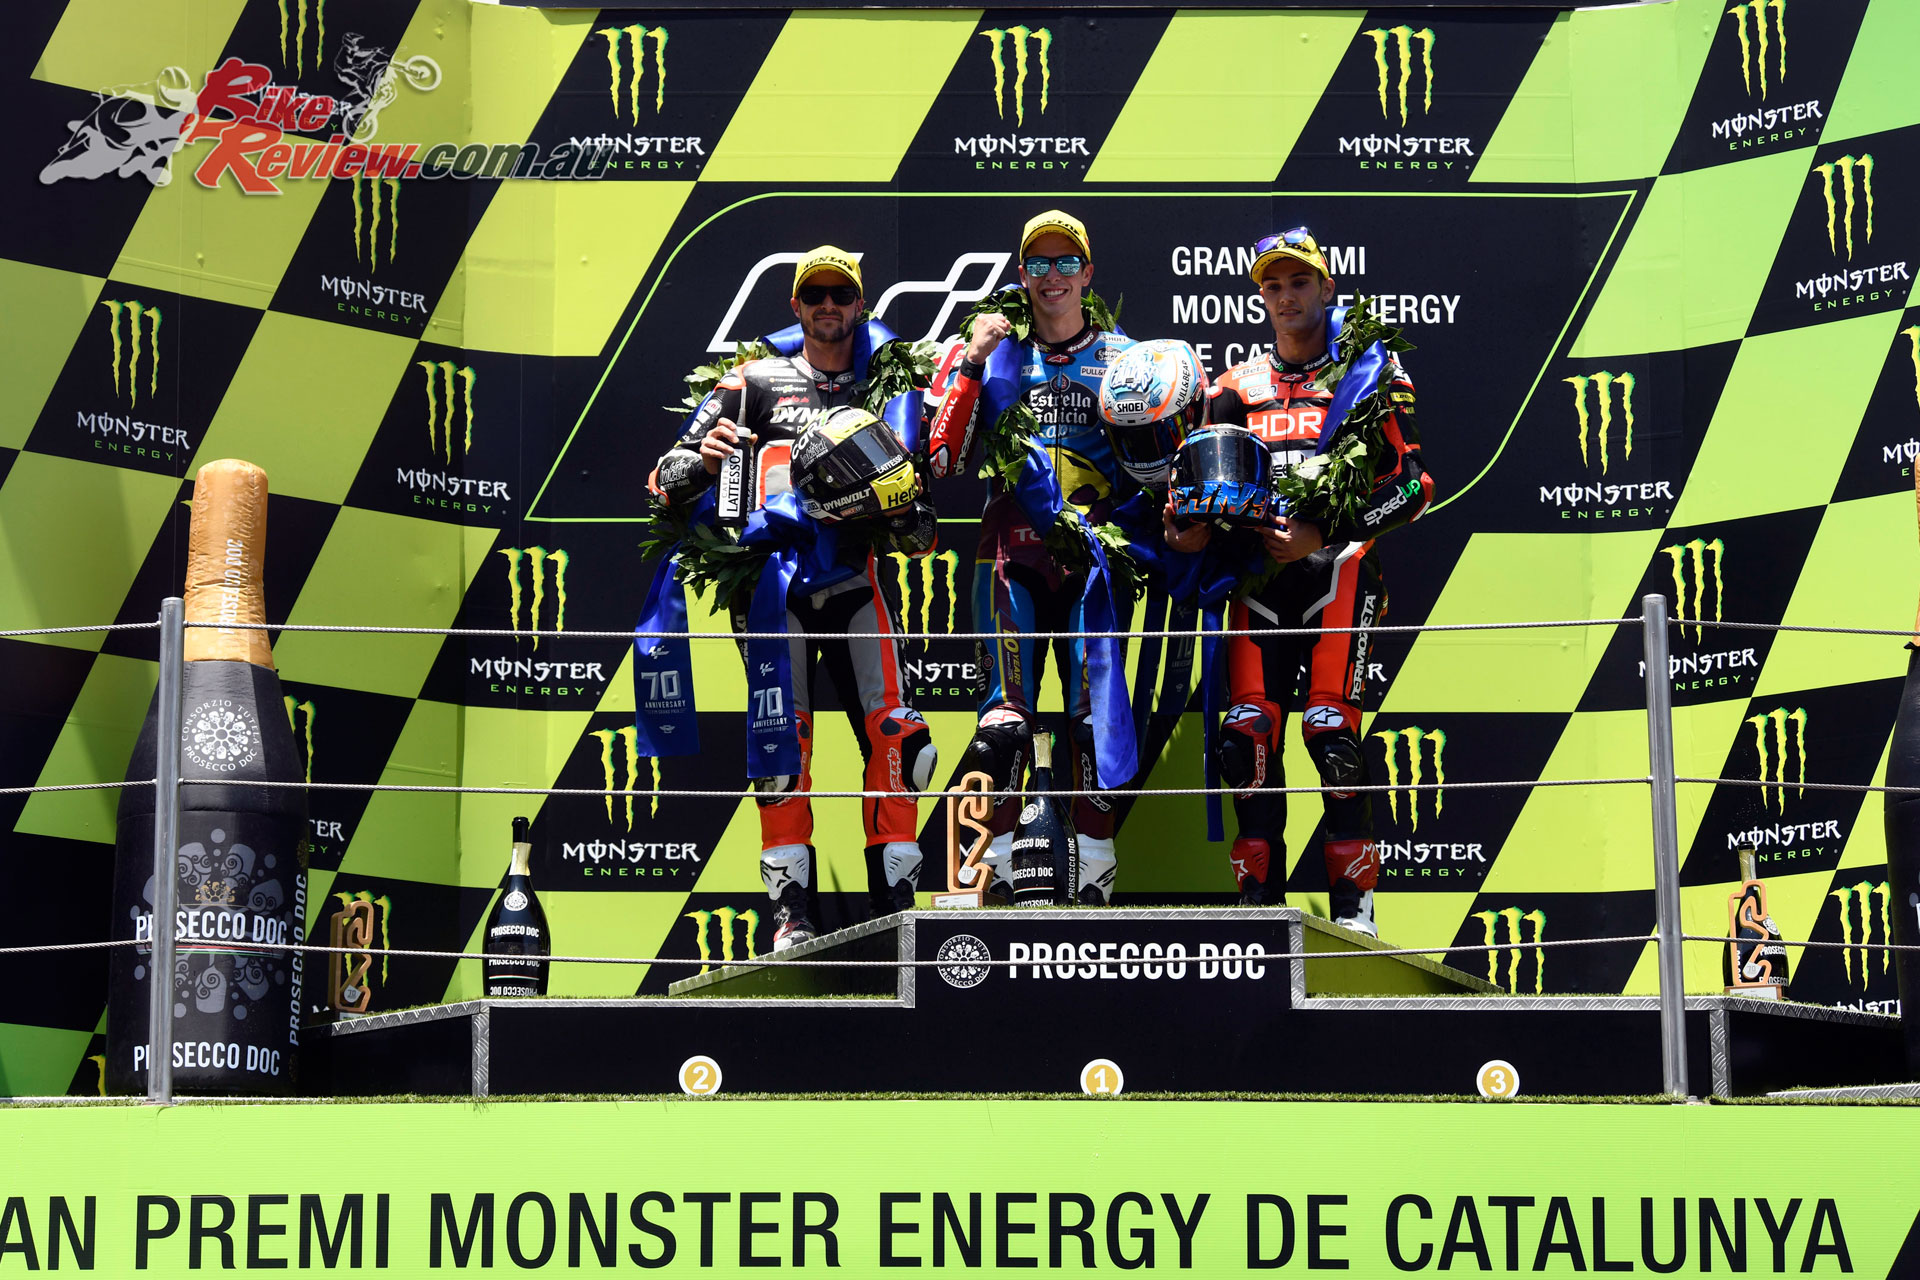 Alex Marquez topped the Moto2 podium